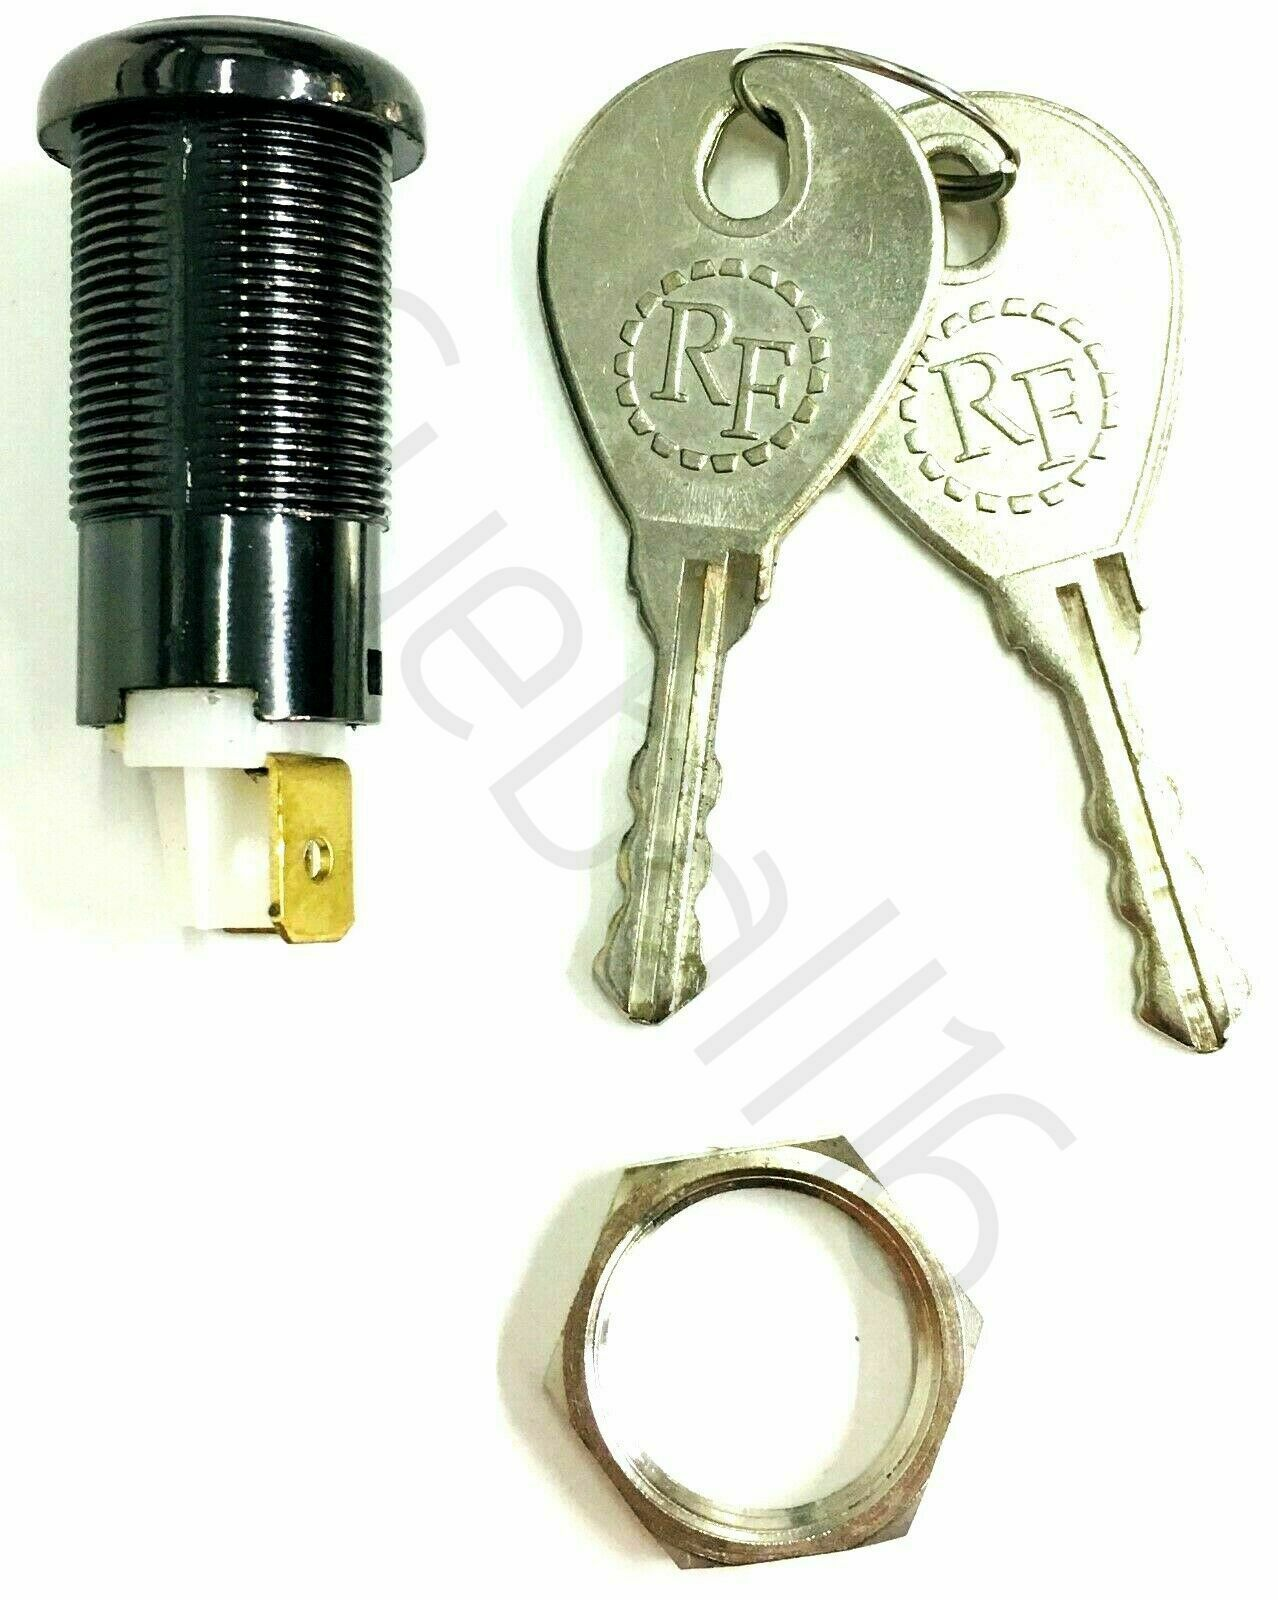 1 x AWP - FRUIT MACHINES REFILL LOCK - Fits all Machines - Comes With 2 KEYS